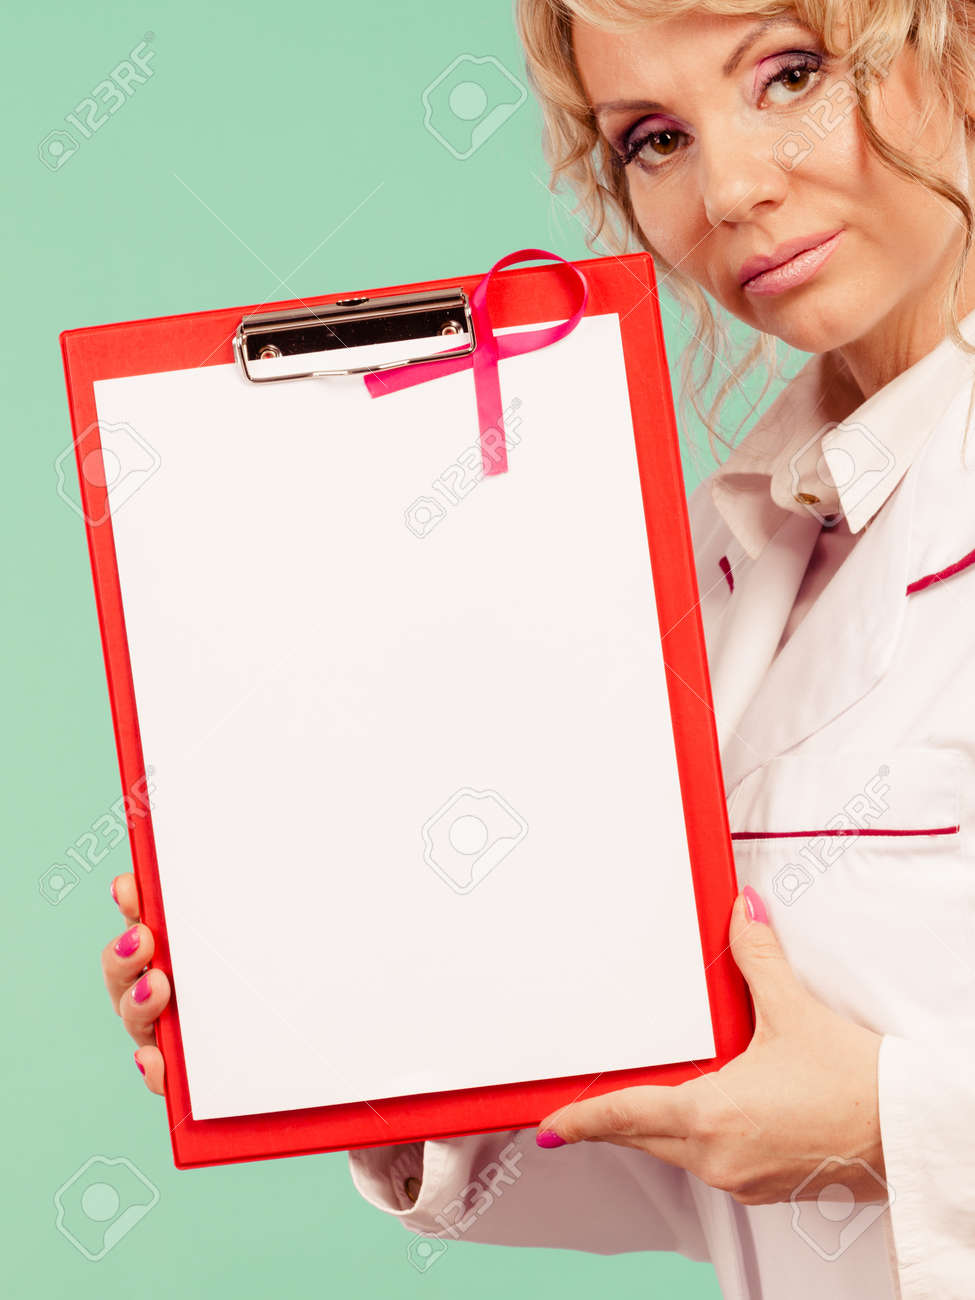 breast cancer tumor. mature woman doctor showing red folder with